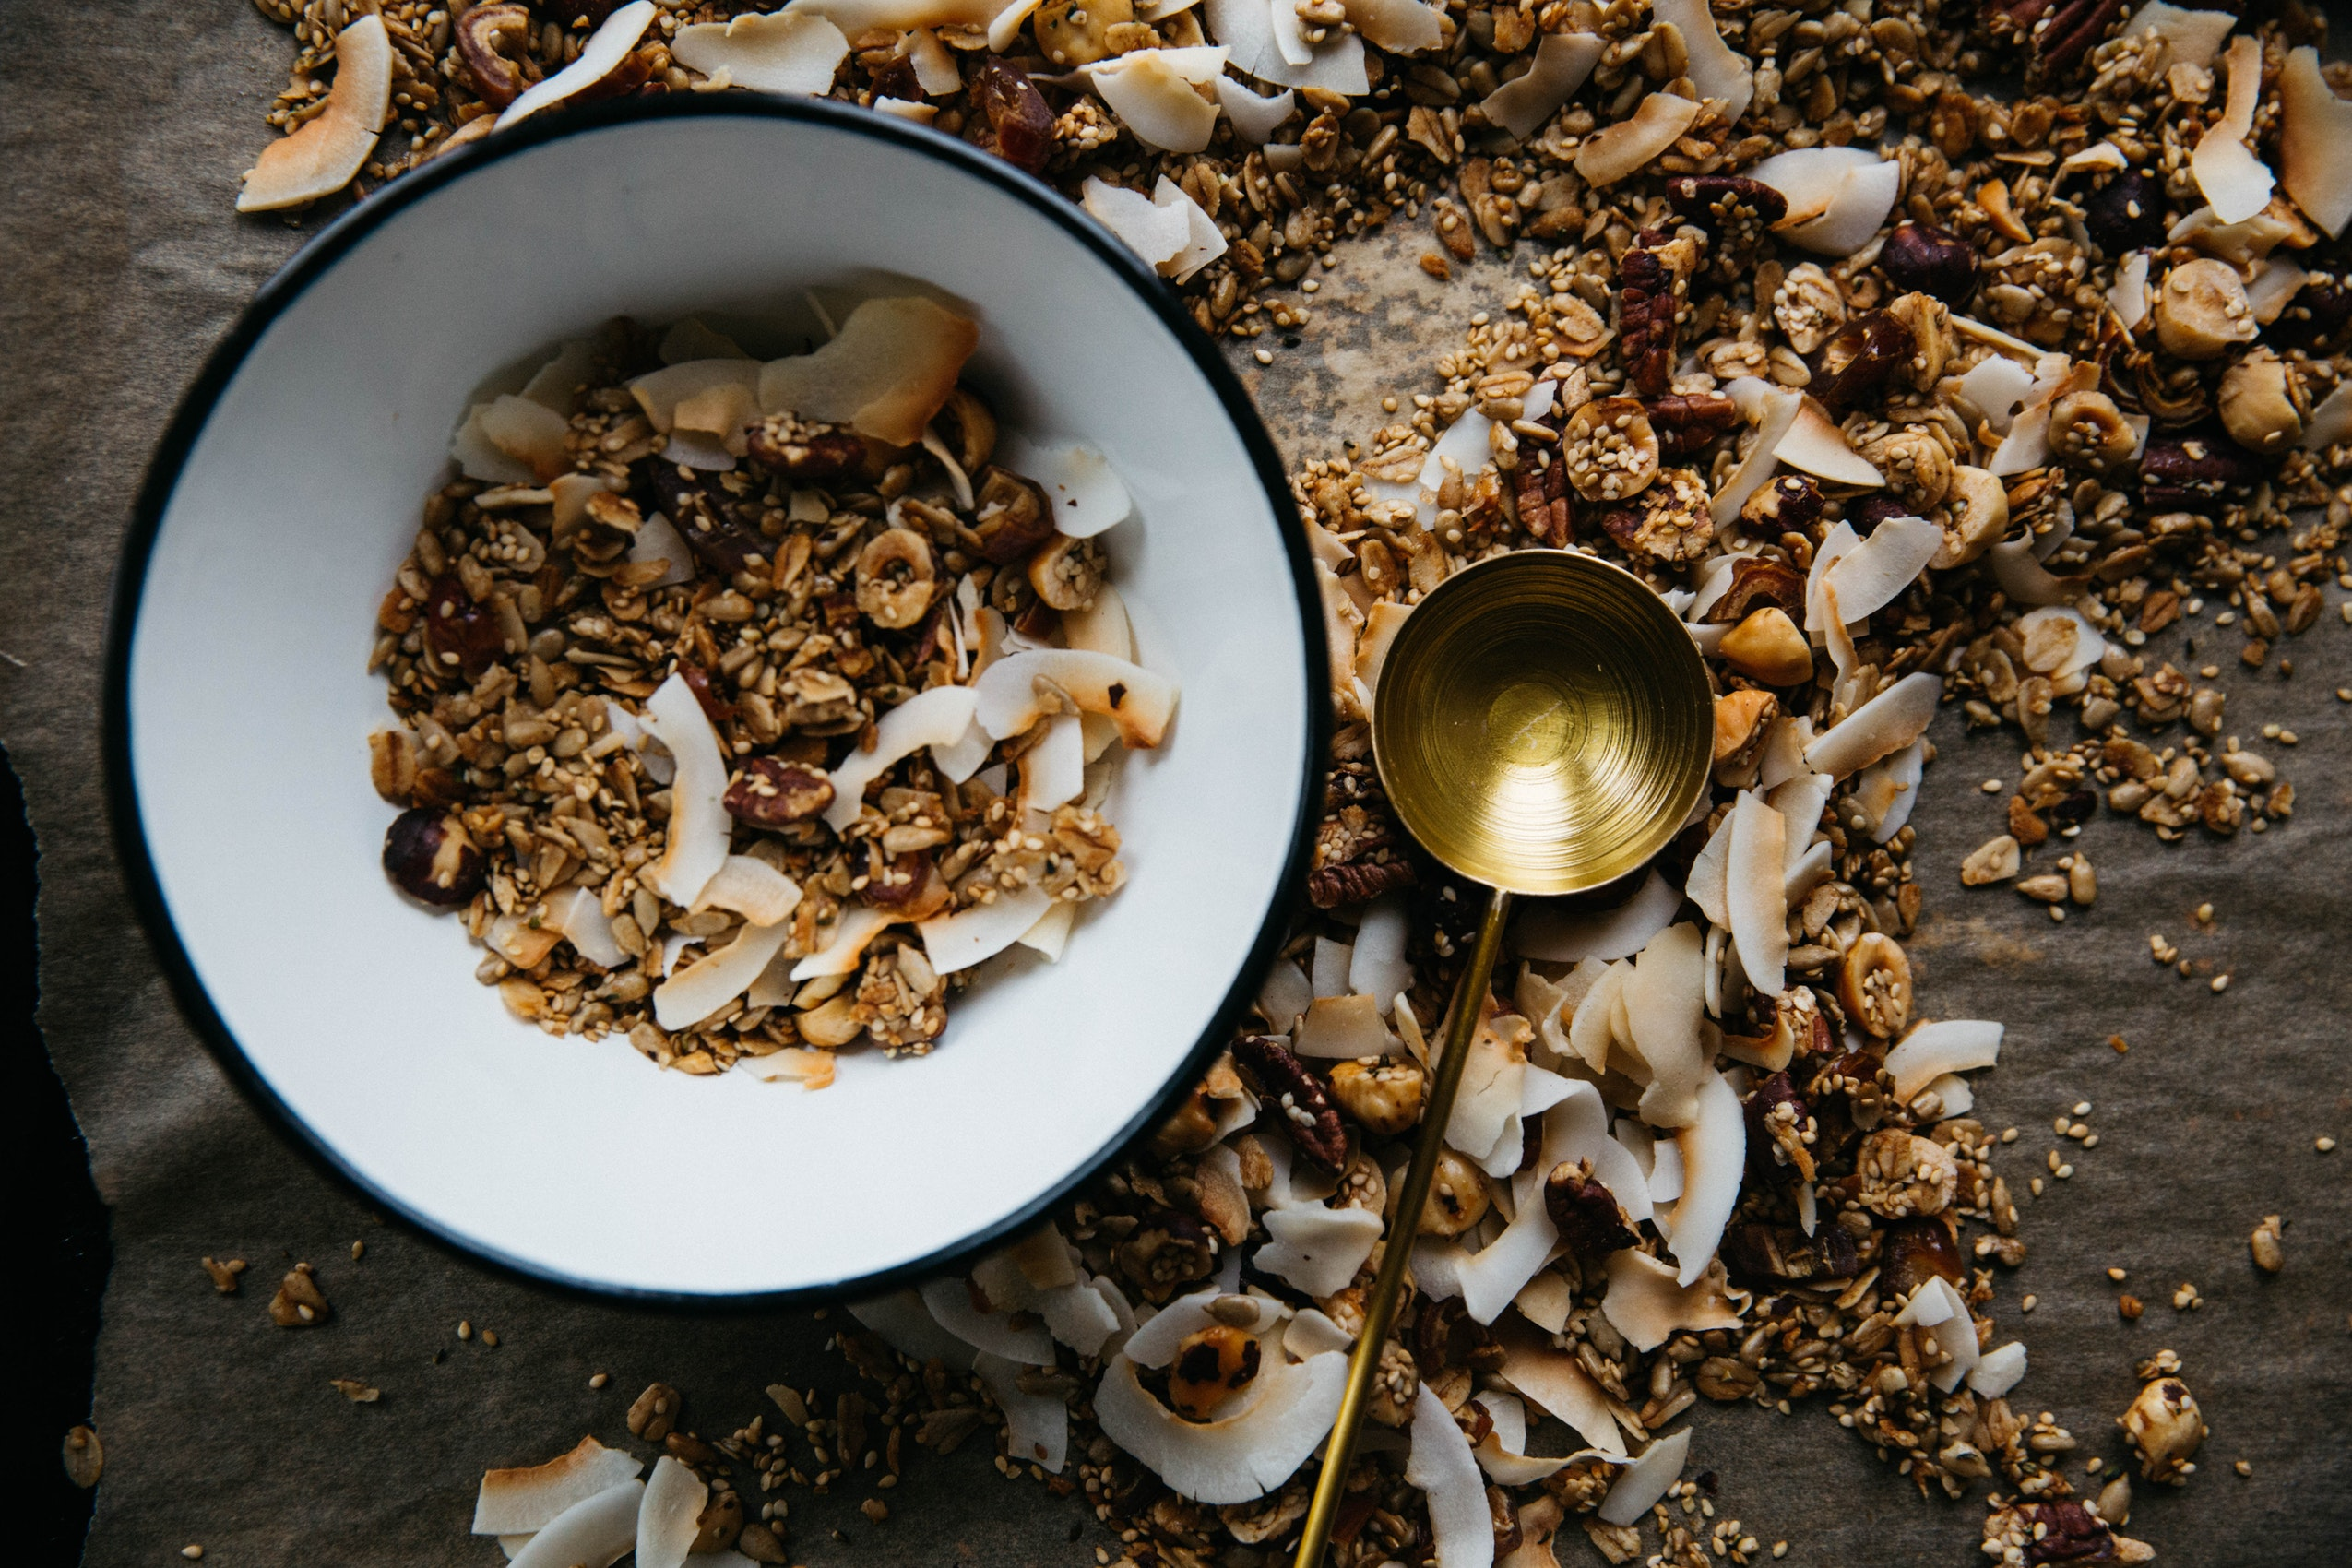 Coconut in a granola meal in a bnowl with a spoon next to it and granola and coconut shavings all over the table.